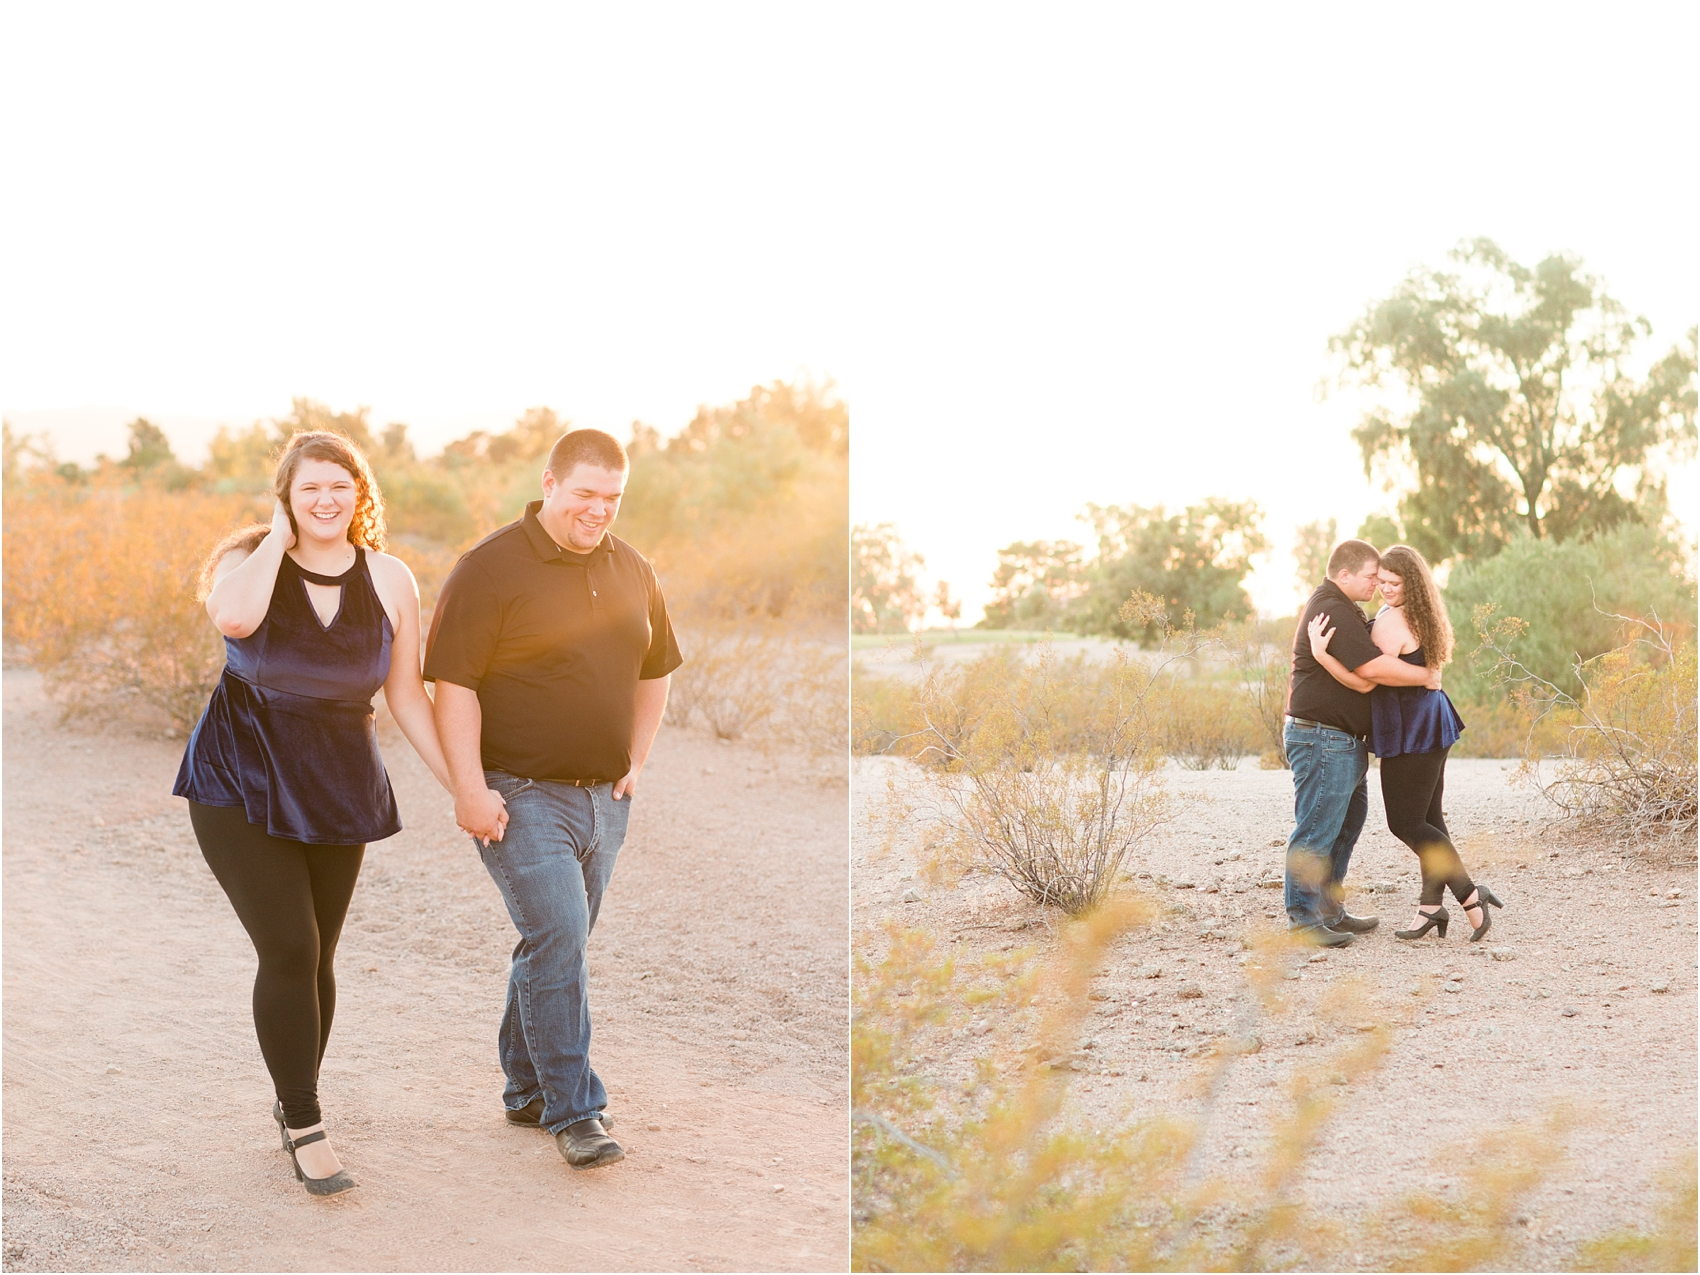 romantic-desert-engagement-photos-in-scottsdale-arizona-courtney-carolyn-photography-by-katelyn-james_0034.jpg